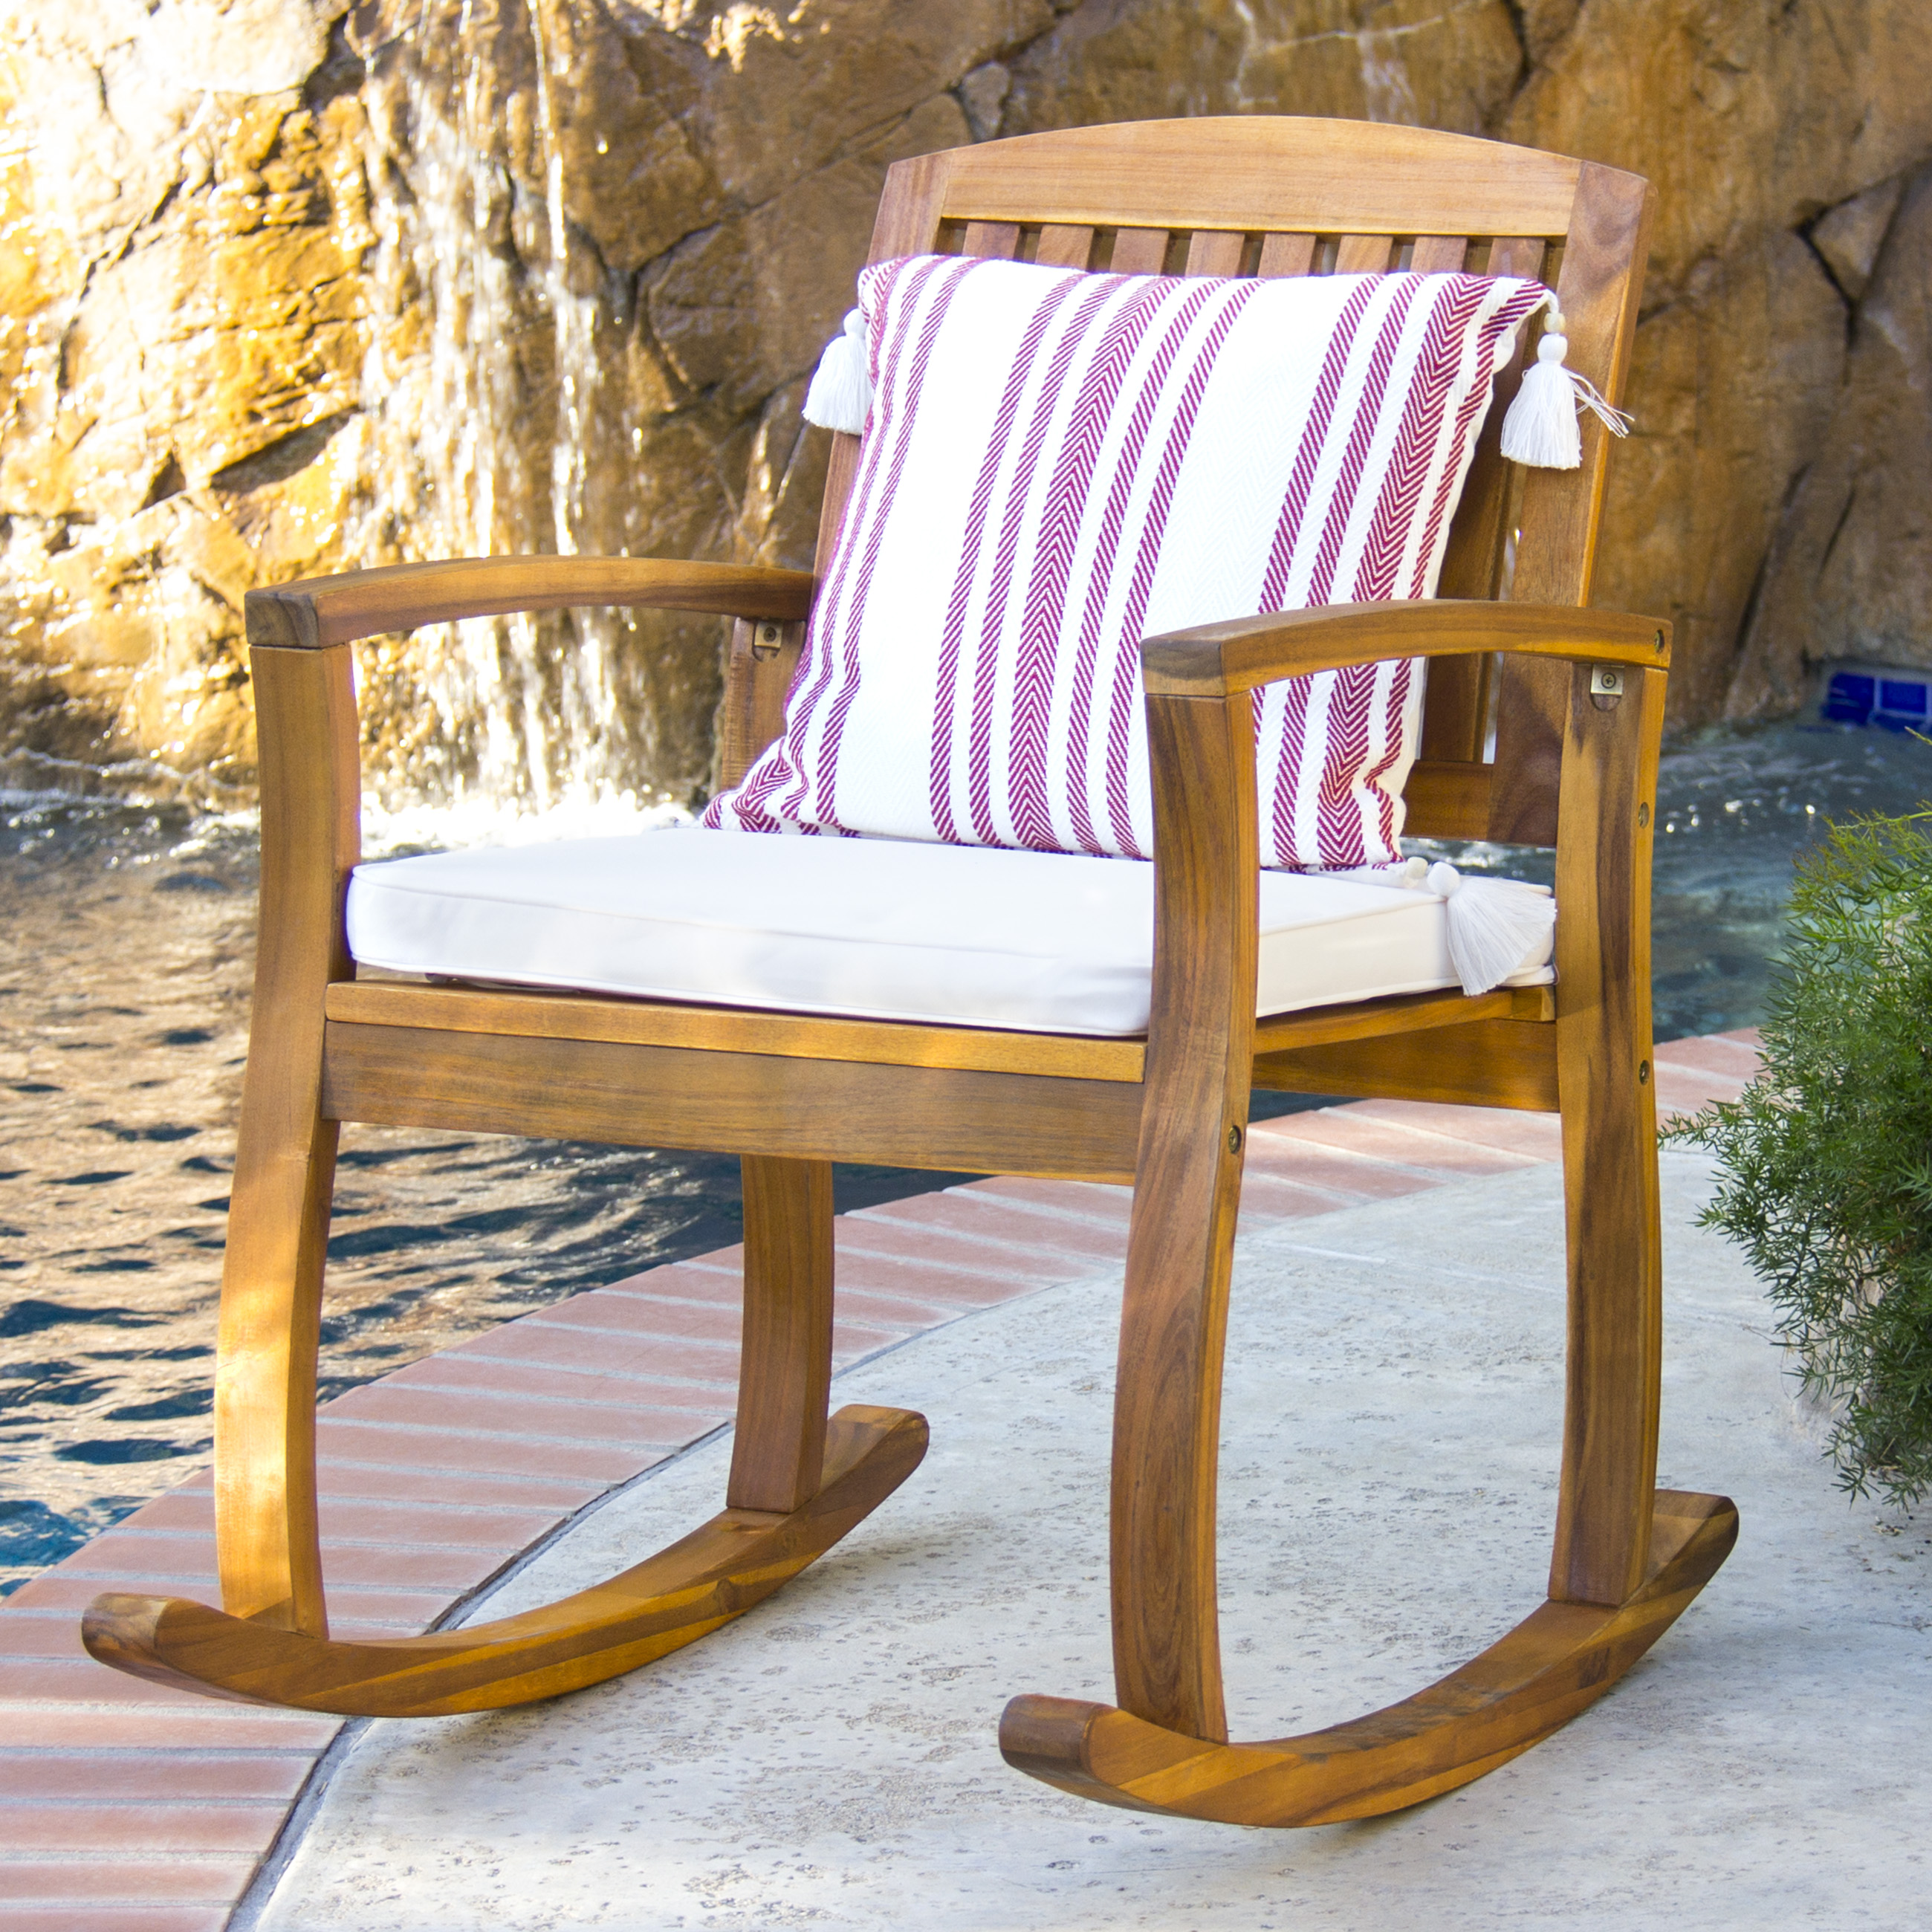 Best Choice Products Outdoor Patio Acacia Wood Rocking Chair W/ Removable  Seat Cushion